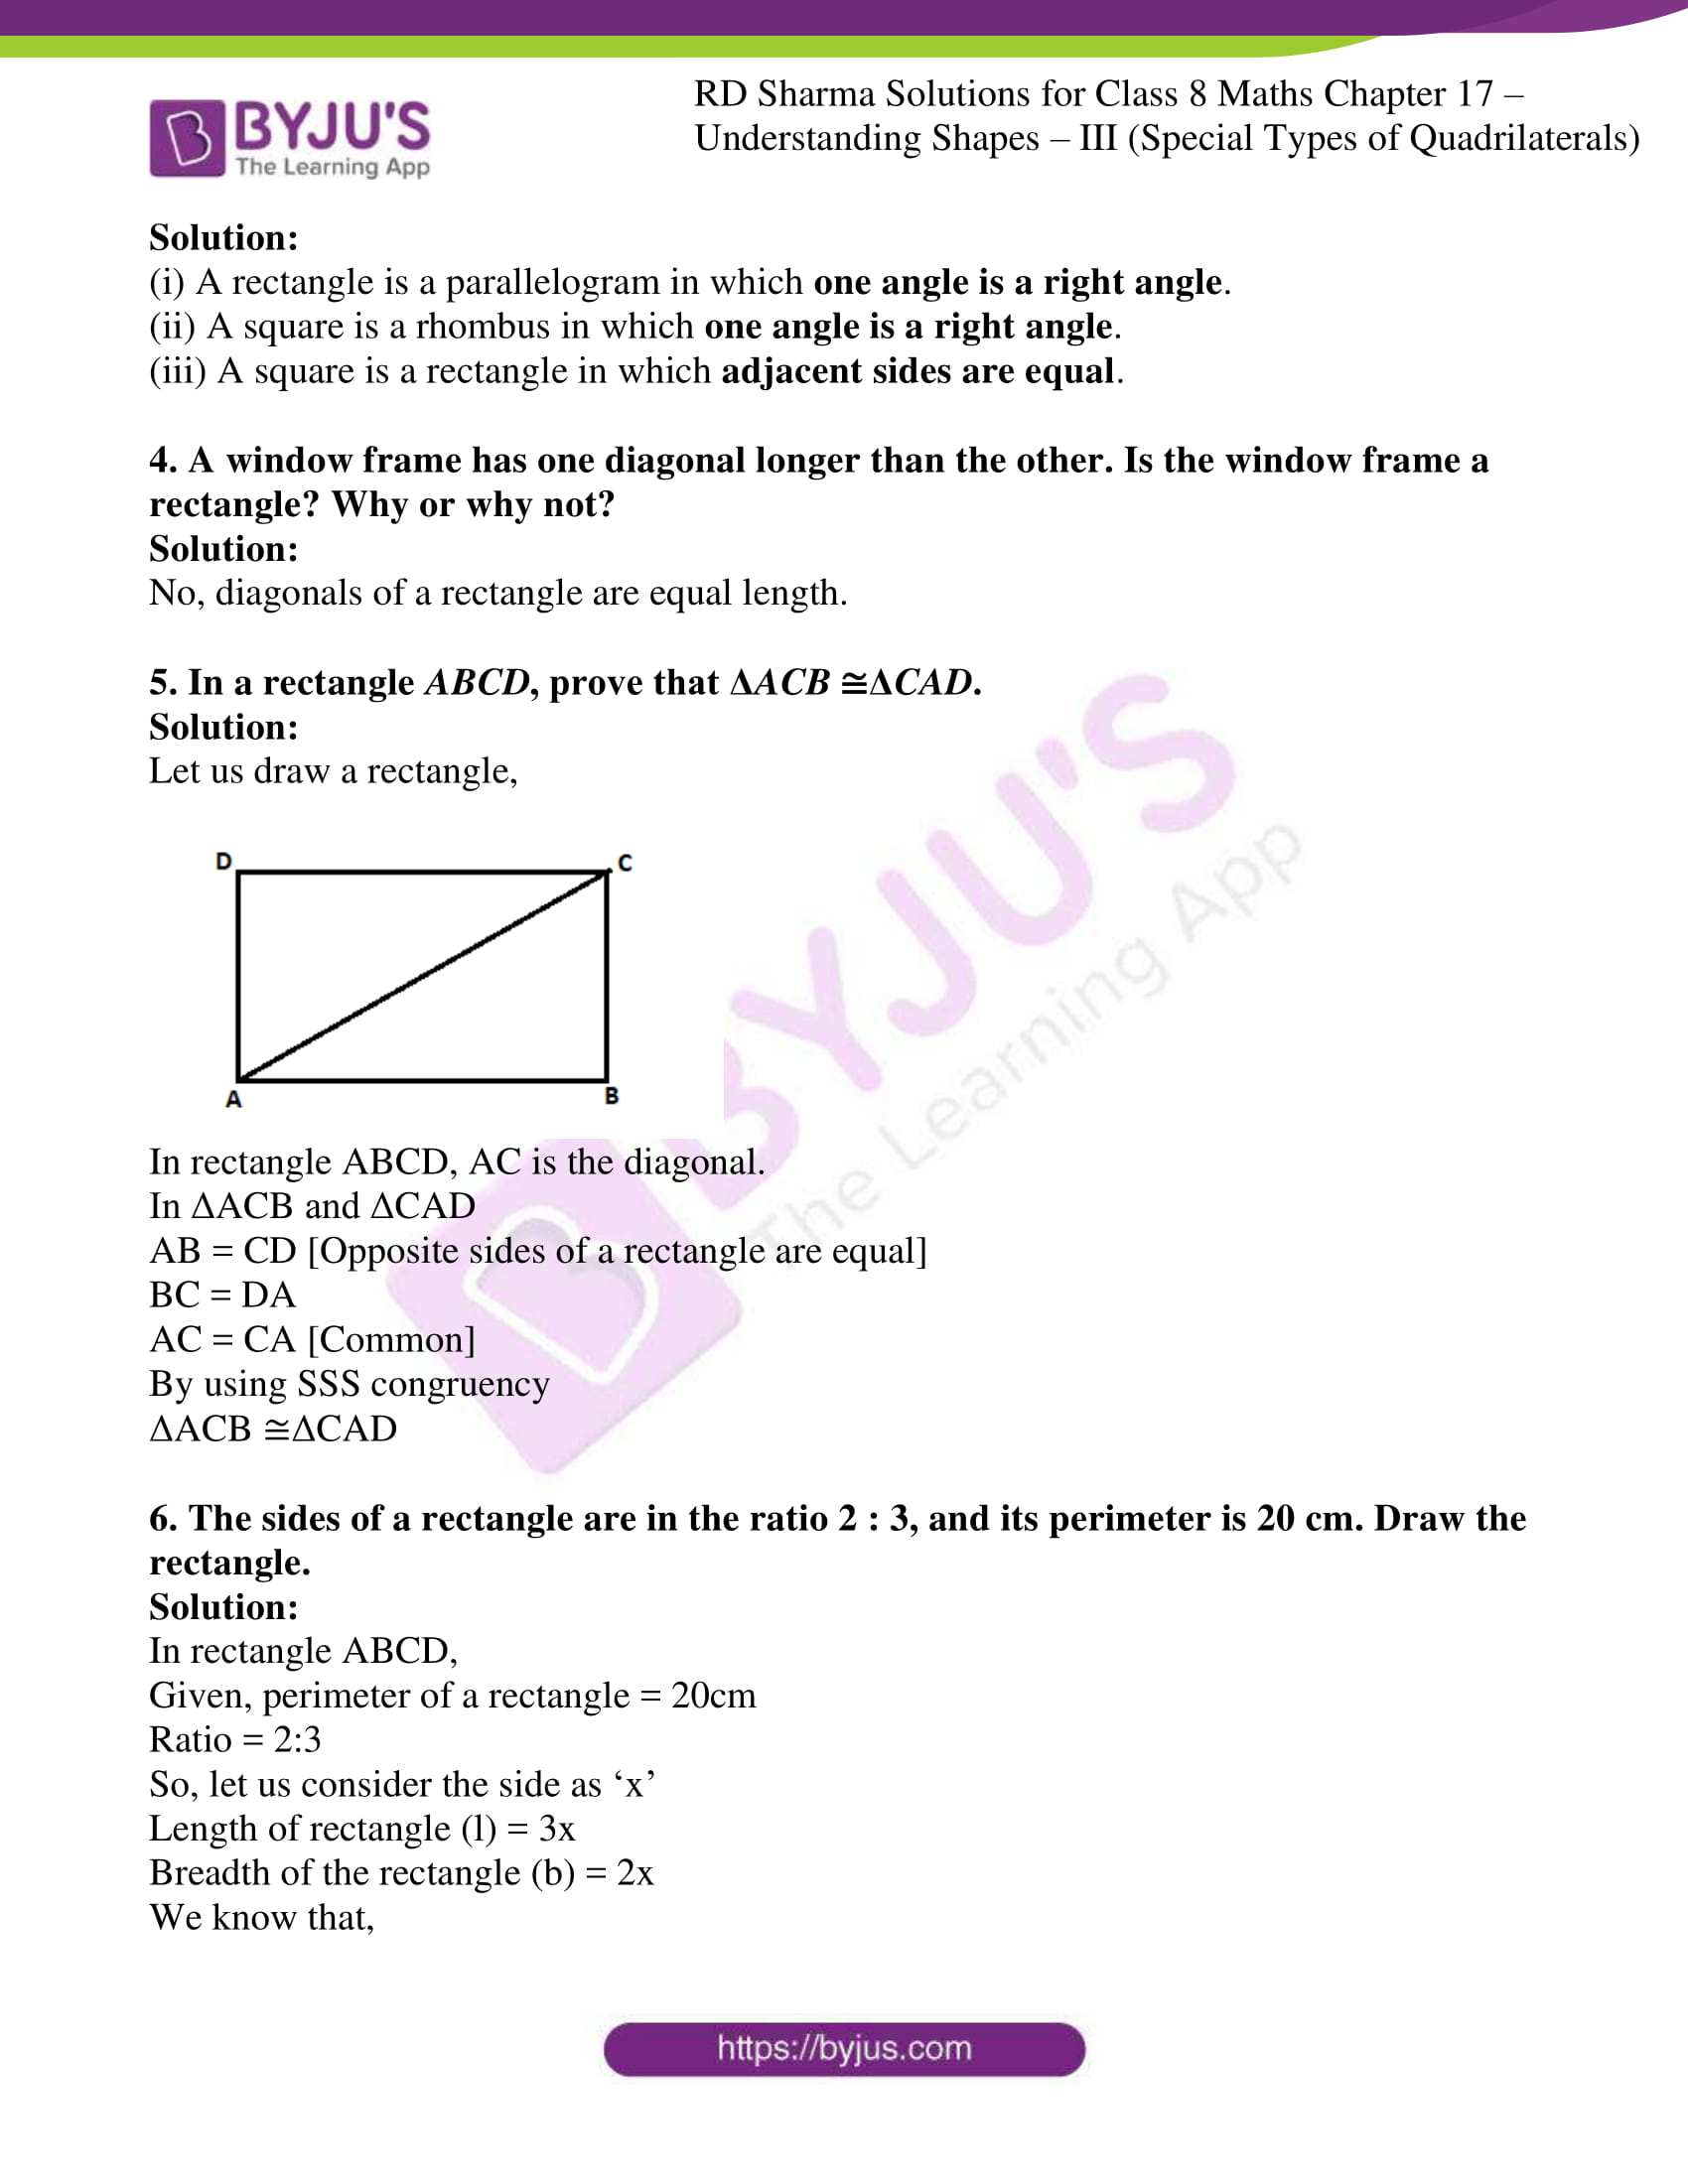 rd sharma class 8 maths chapter 17 exercise 3